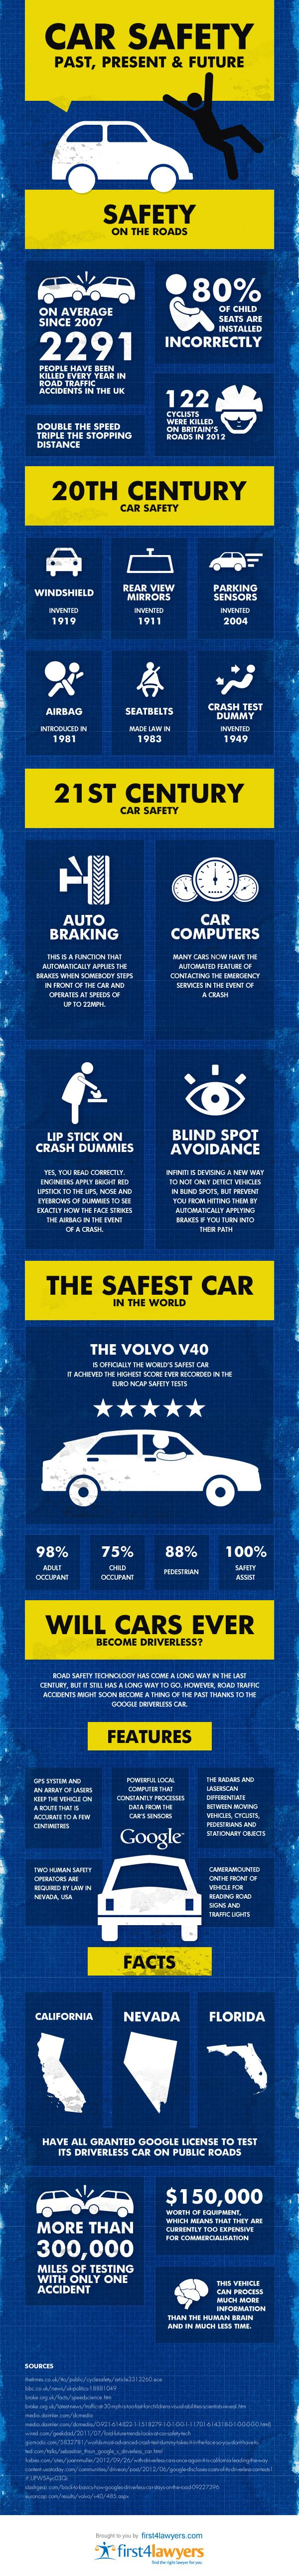 38 best Car safety images on Pinterest | Safety, Security guard and Au